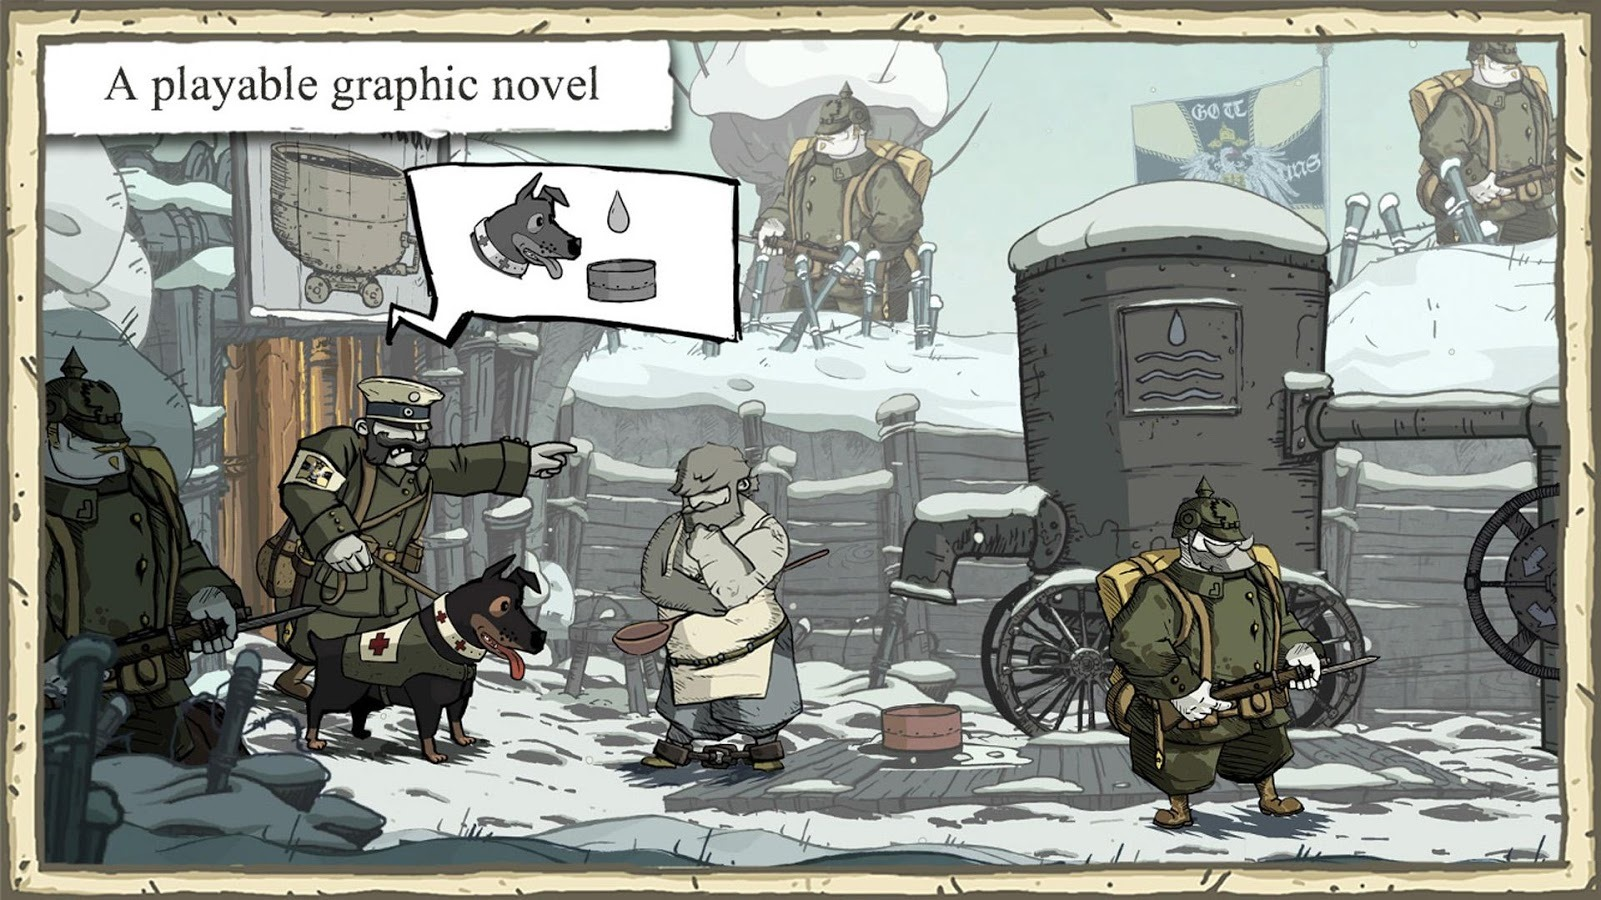 Ubisoft Publishes WWI Drama Game Valiant Hearts: The Great War For Android And Android TV